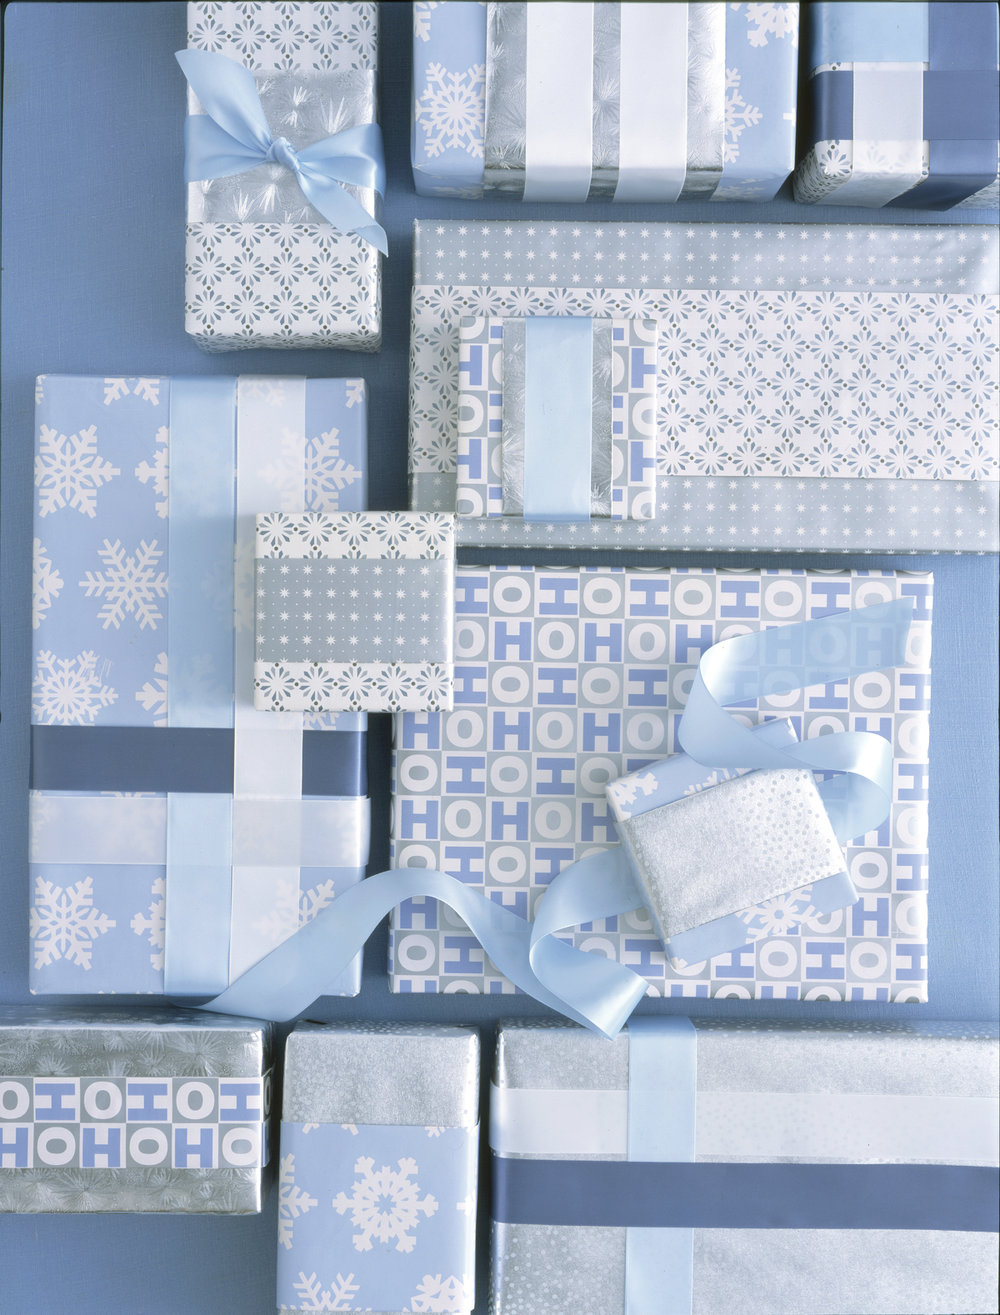 "Martha Stewart Everyday ""HOHOHO"" giftwrap, 2003. Prop styling: Lorna Aragon & Edward Gallagher."